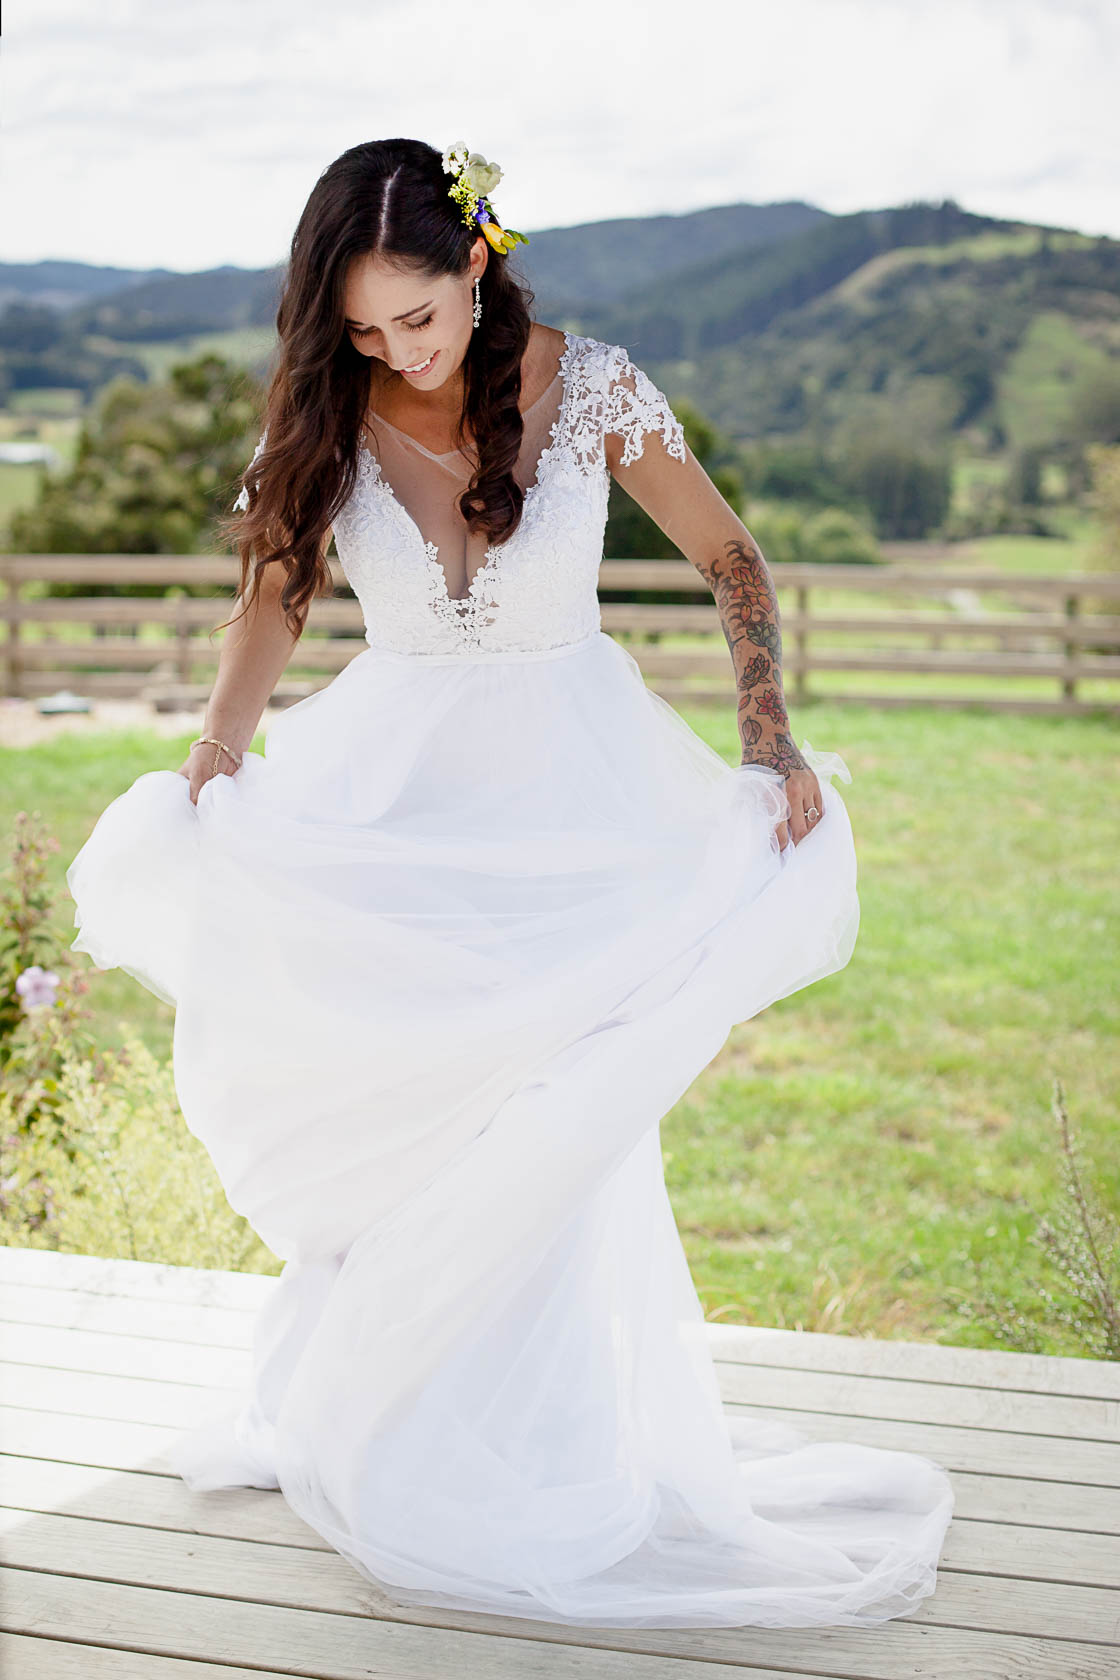 Matakana-wedding-auckland5755-Edit.jpg